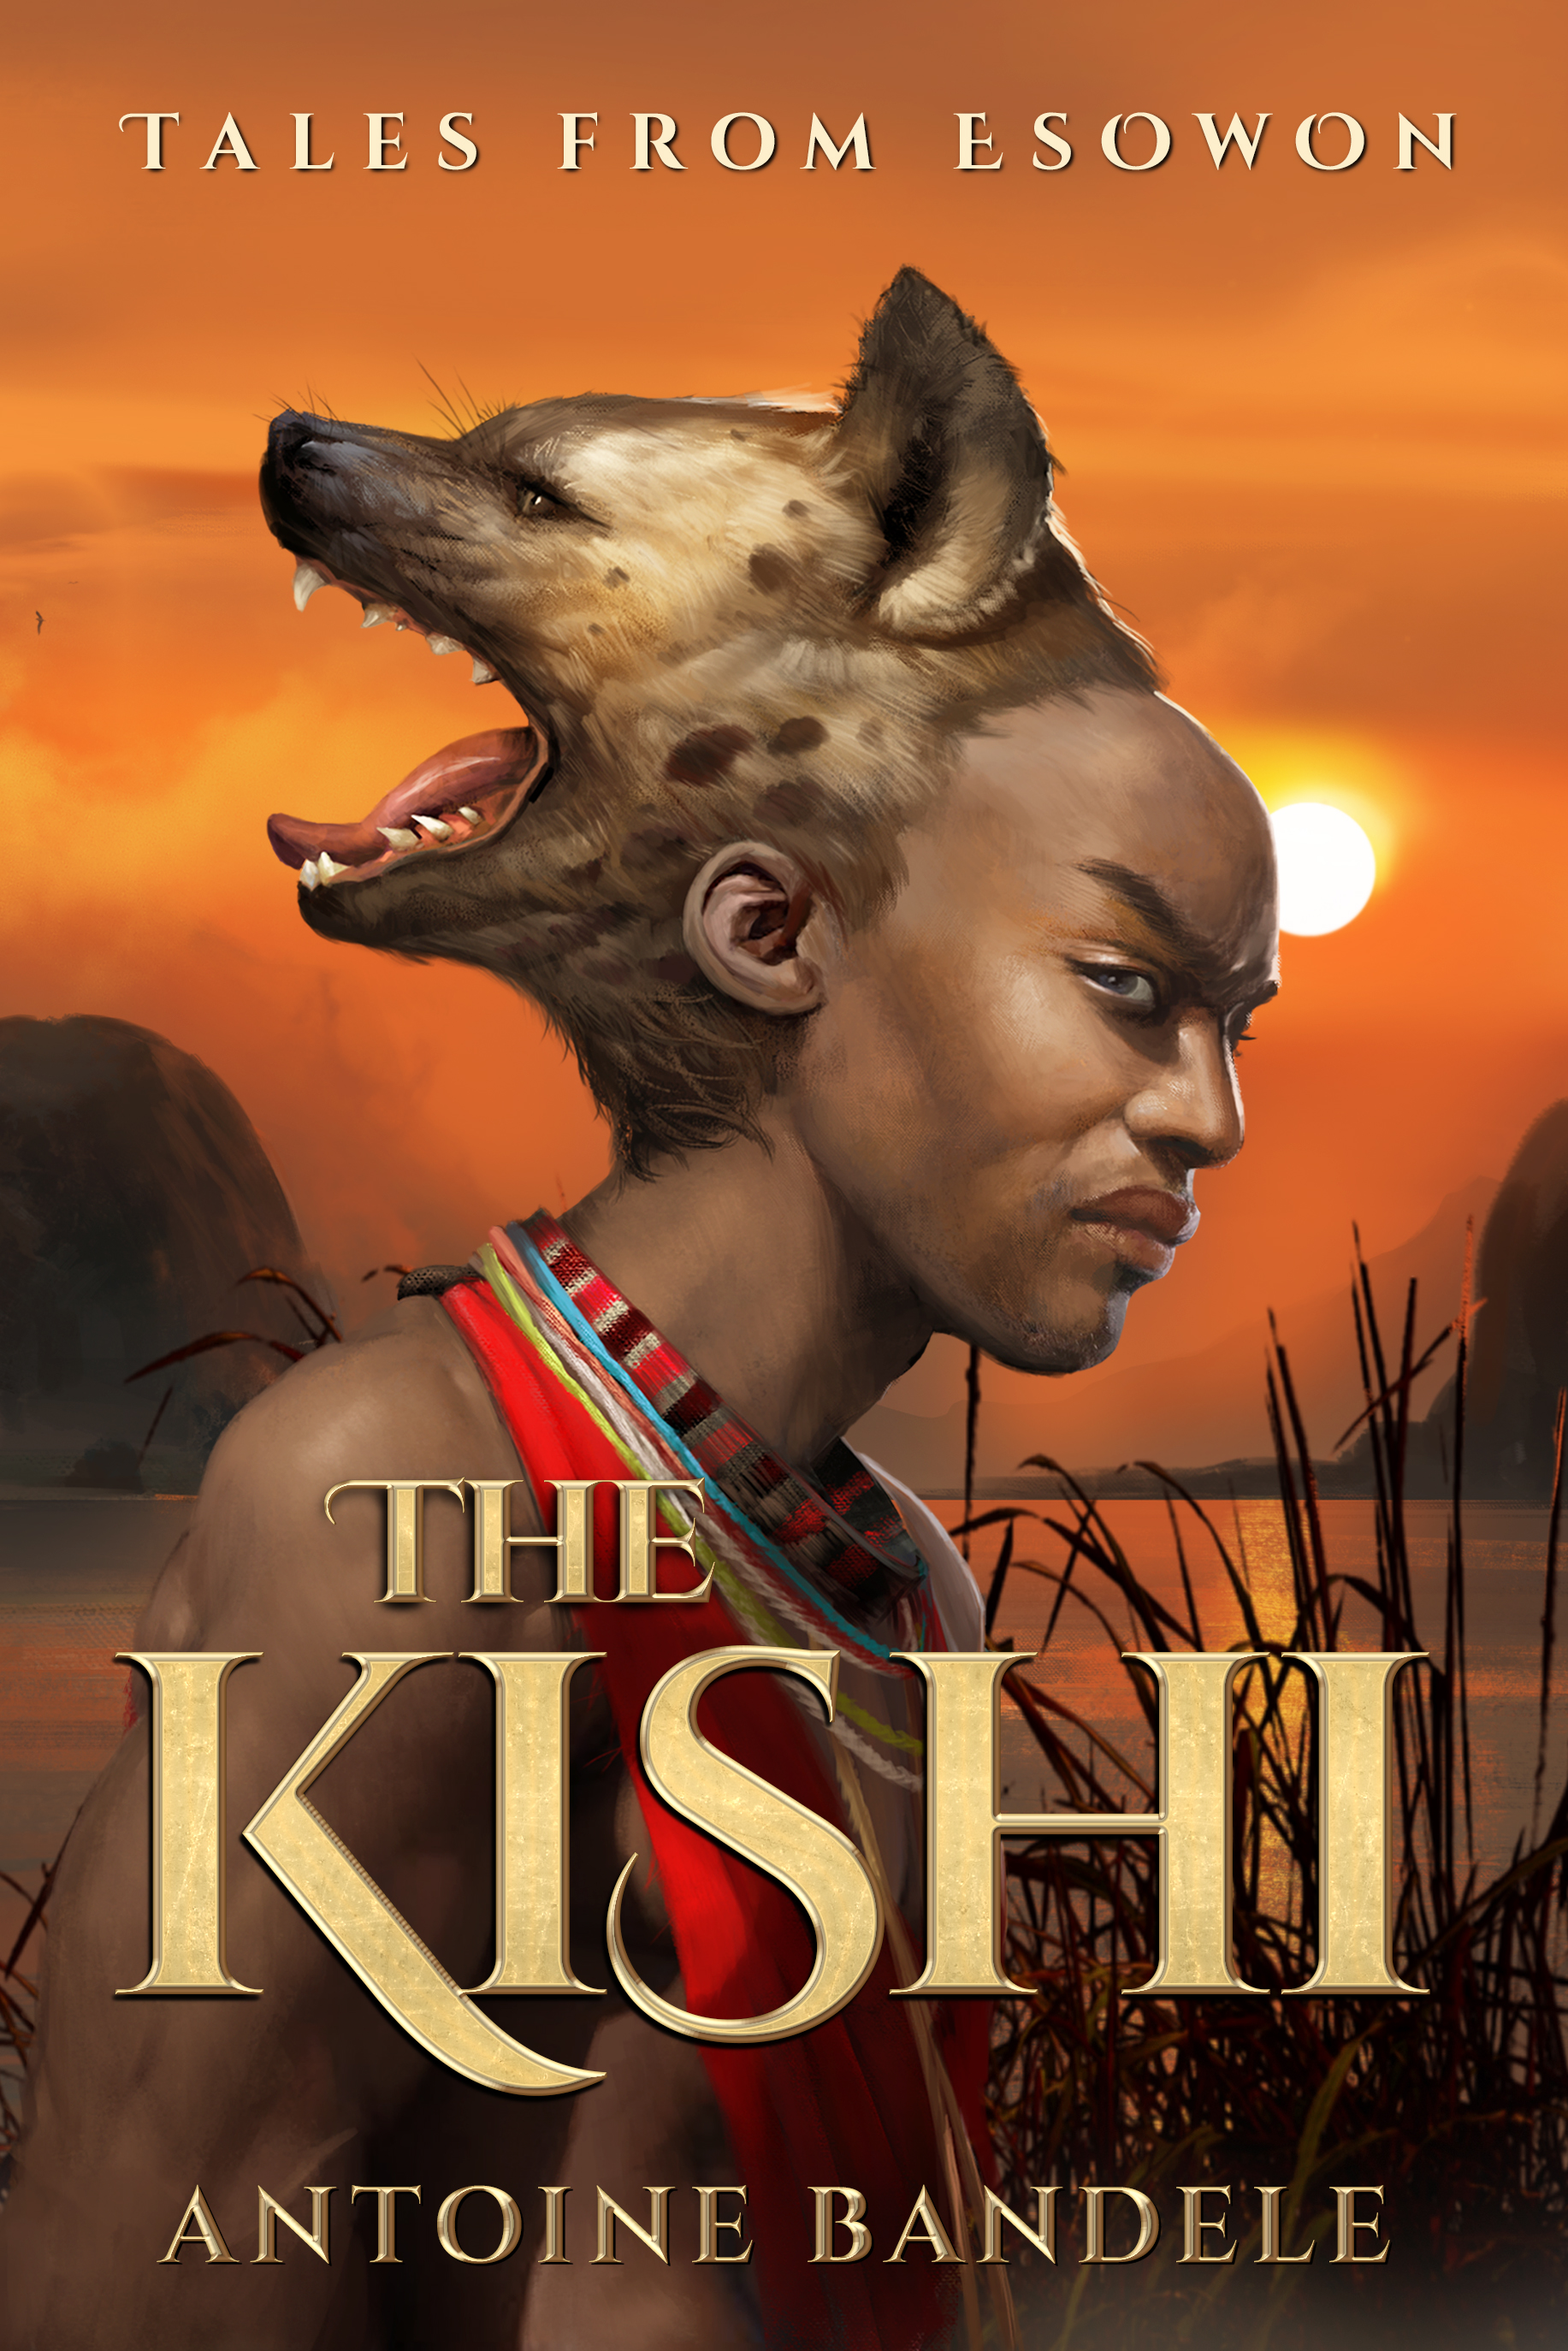 THE KISHI - A PACIFIST MONK. A THREATENING DARKNESS. AN INNOCENT VILLAGE HANGING IN THE BALANCE.◦ READ NOW ◦ LISTEN NOW